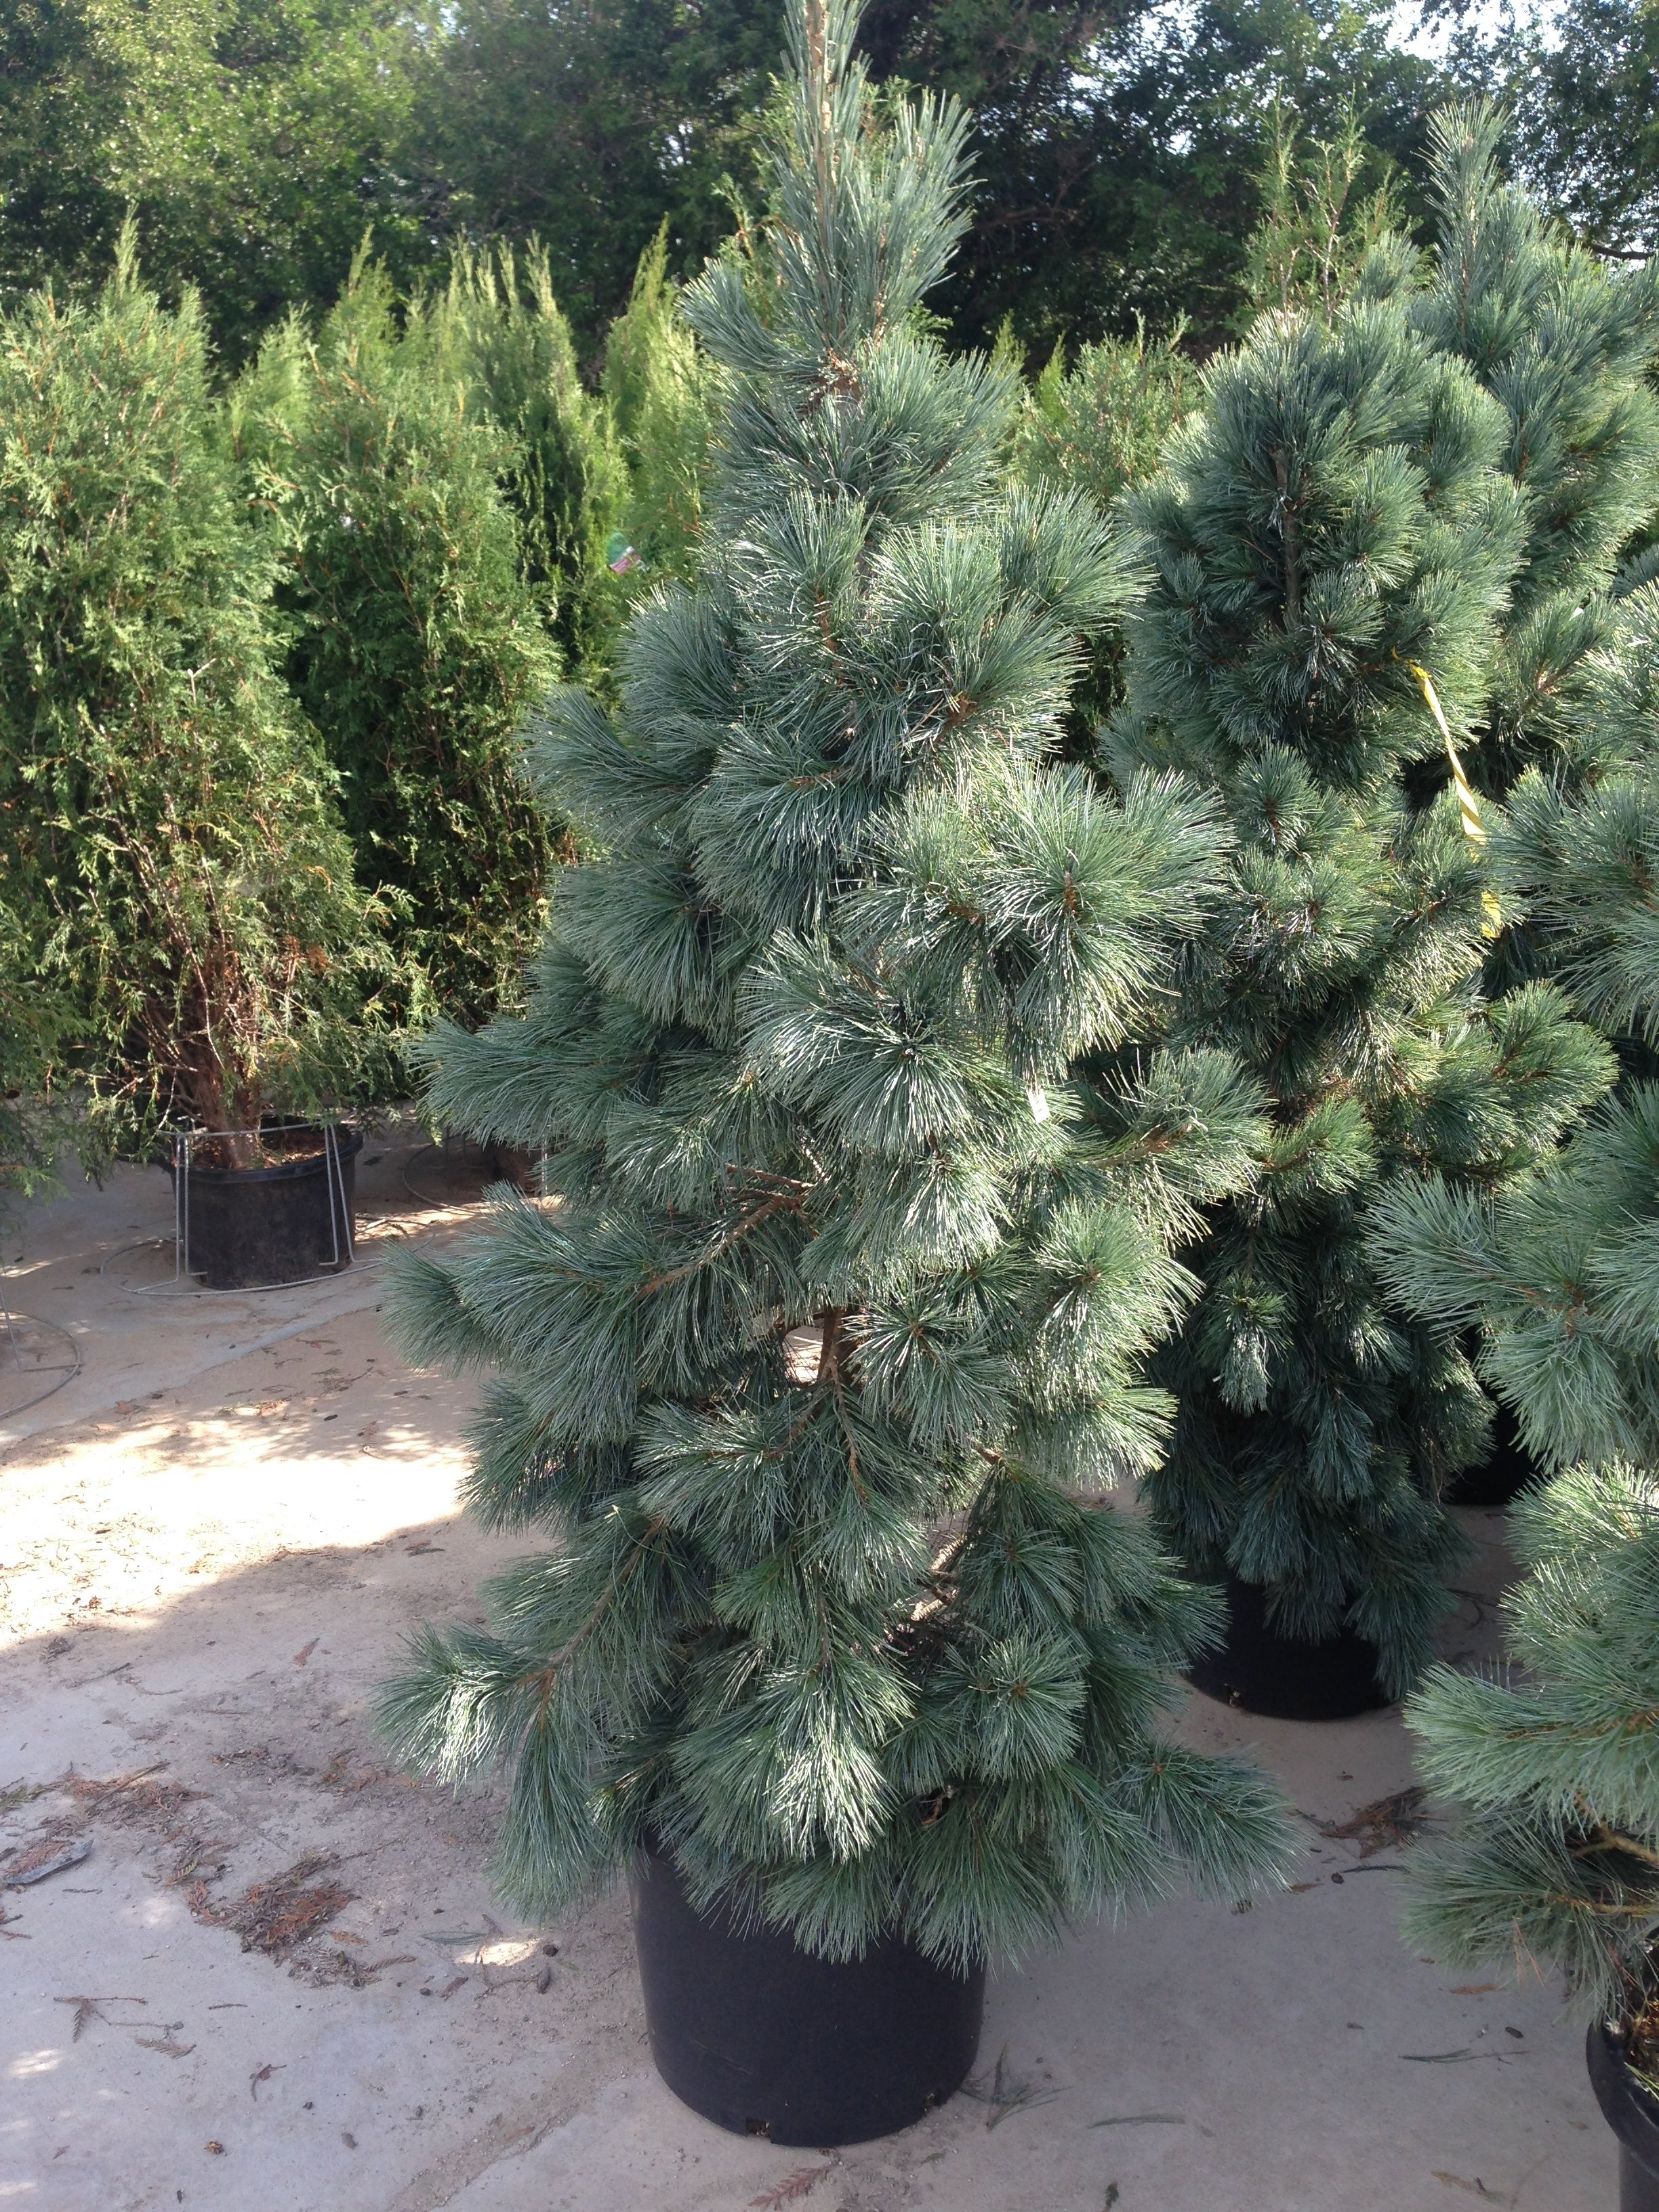 Cesarini Blue Limber Pine Grows Tall N Narrow Can Be Pruned To Desired Height Width